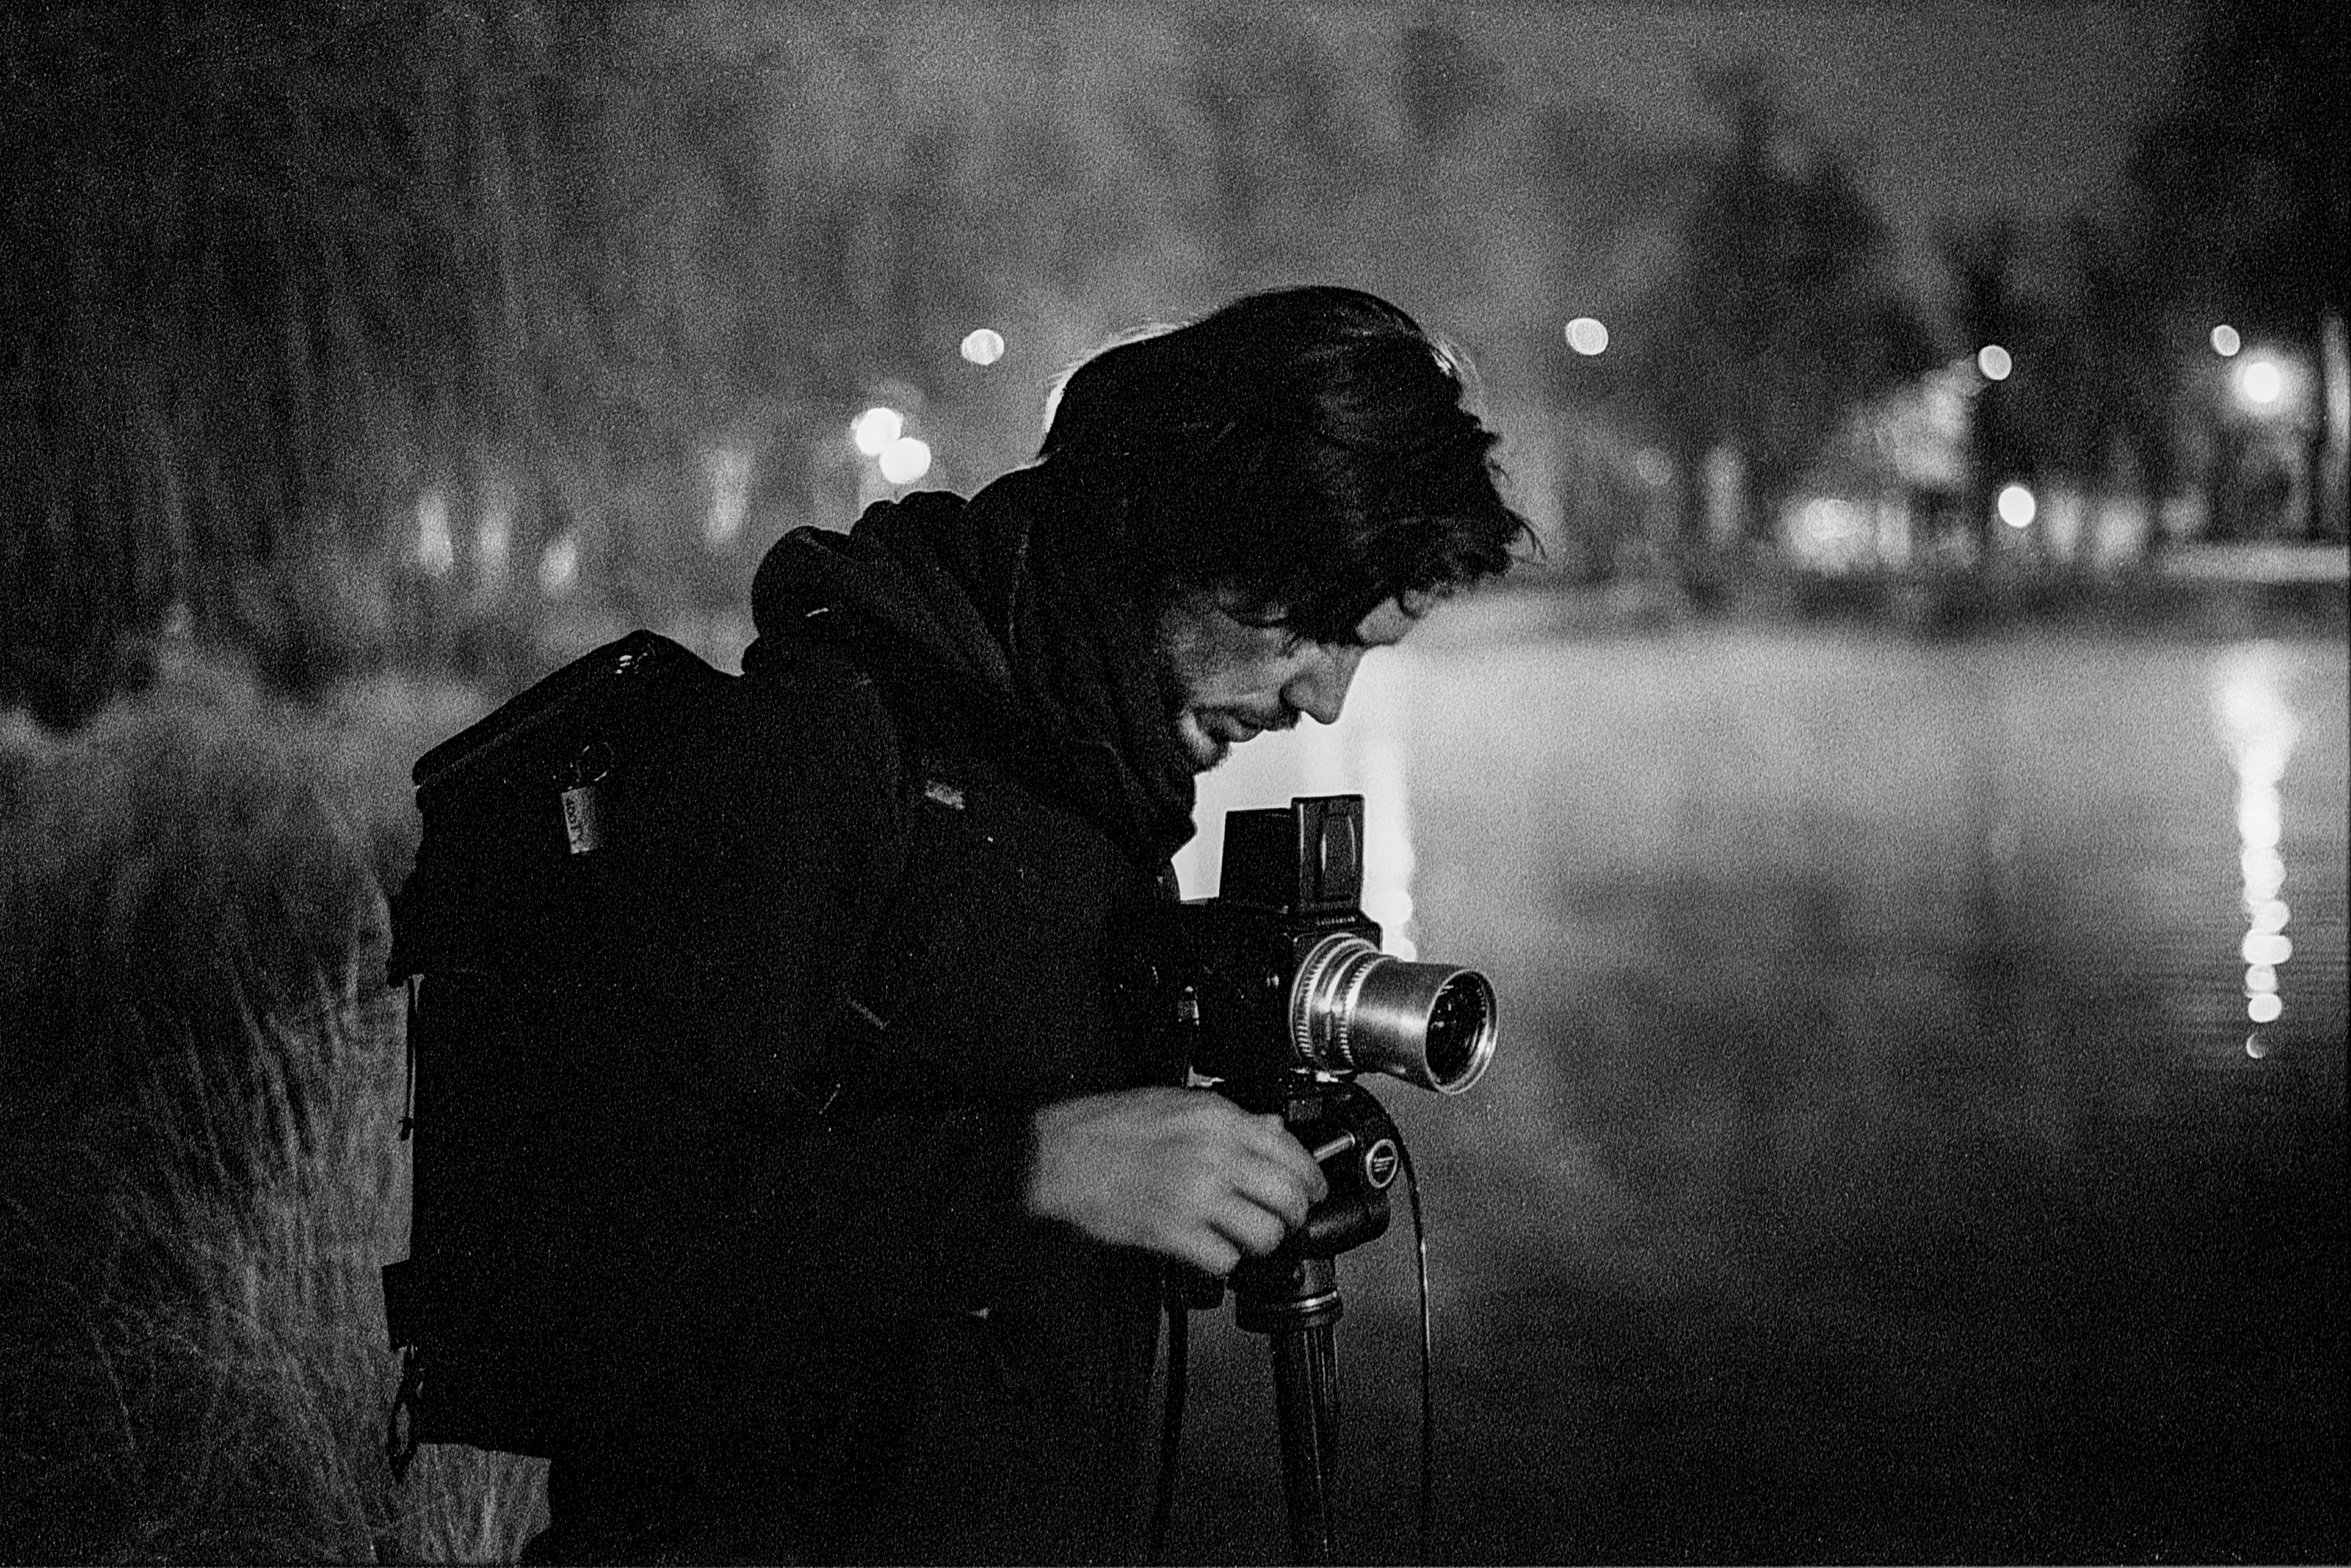 Night shoot with the hasselblad photo